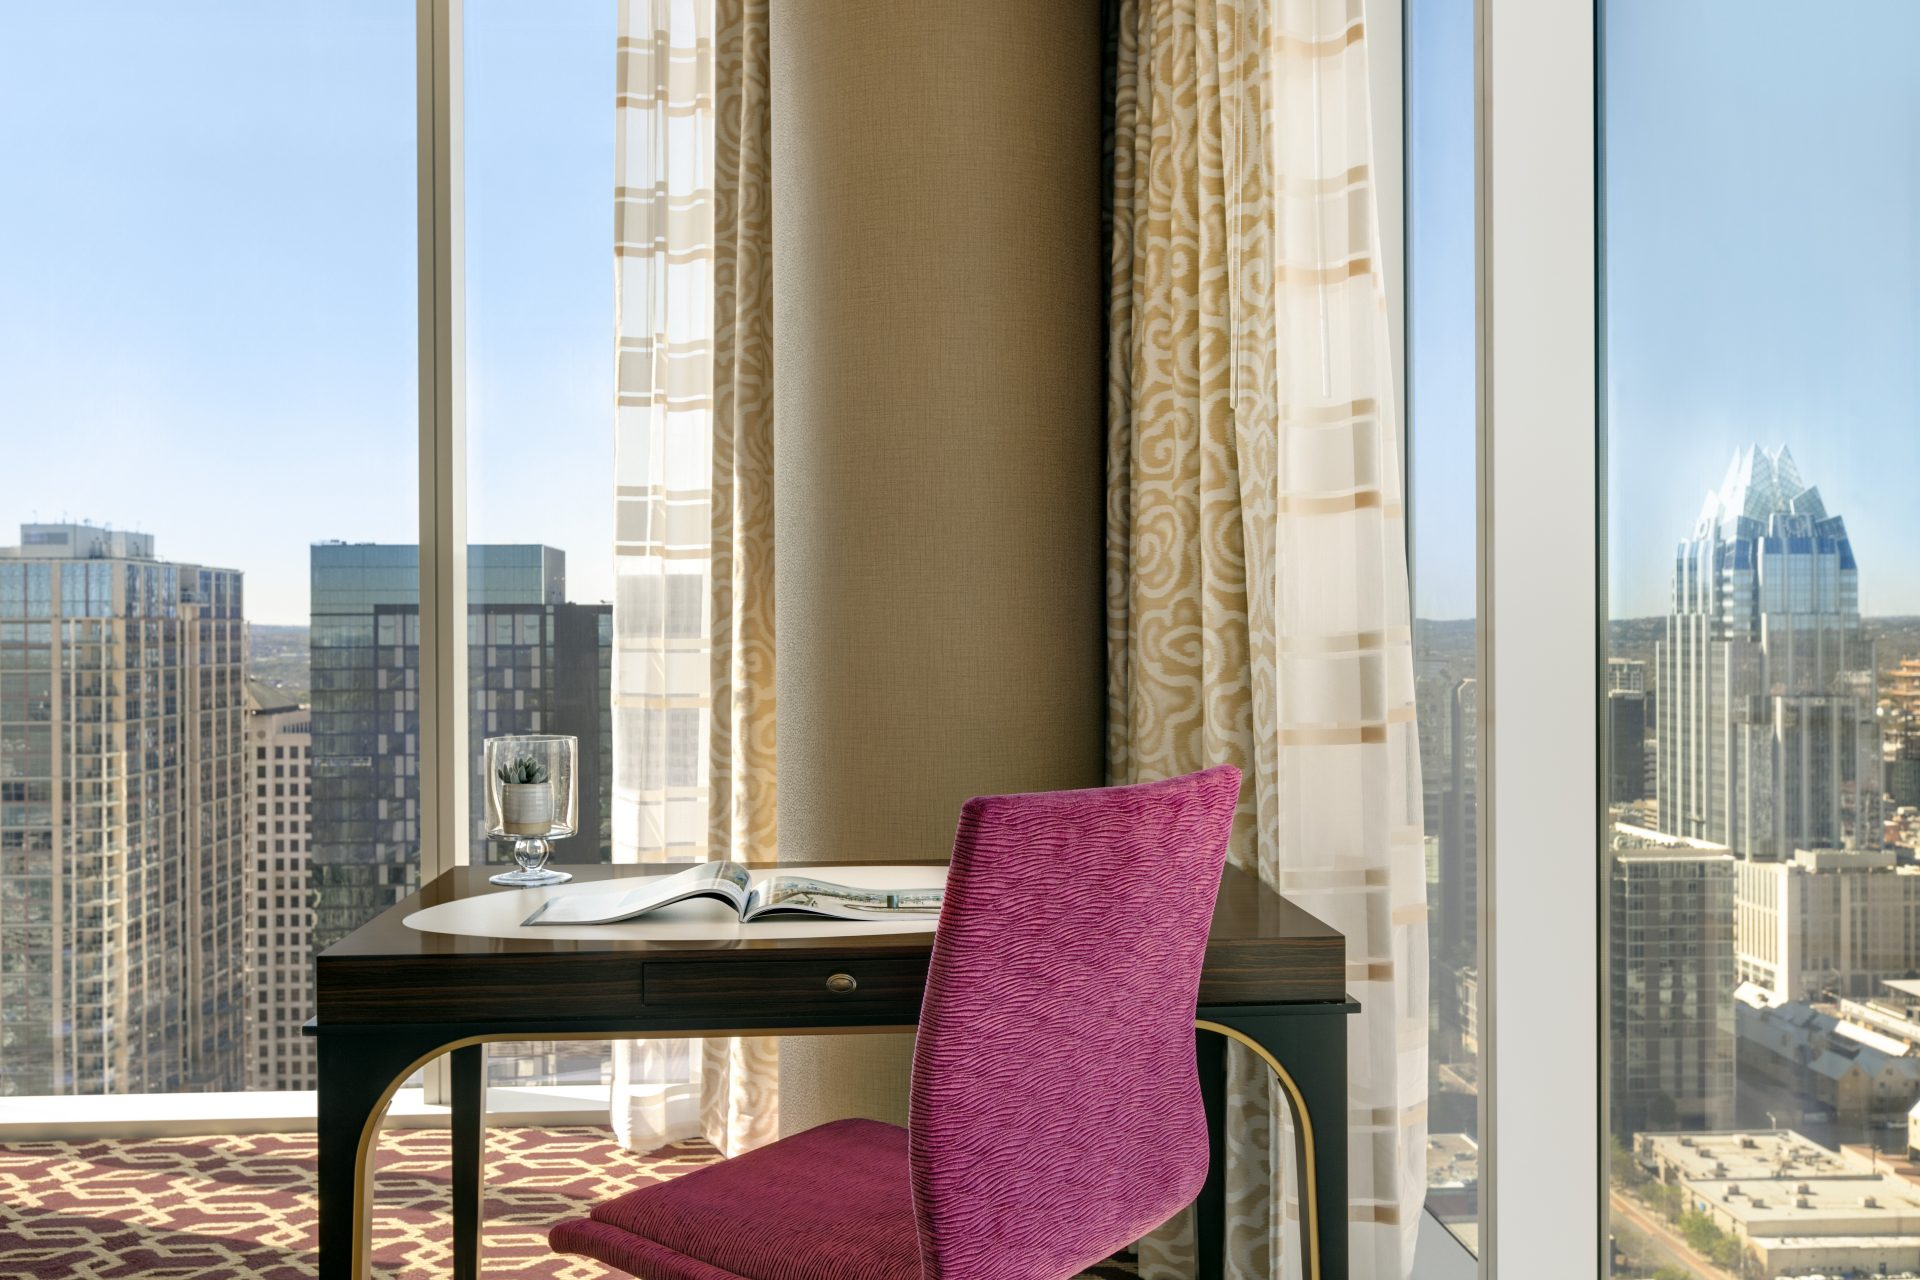 Elegant personal worktable and chair set in the corner of a floor to ceiling wraparound view of downtown area